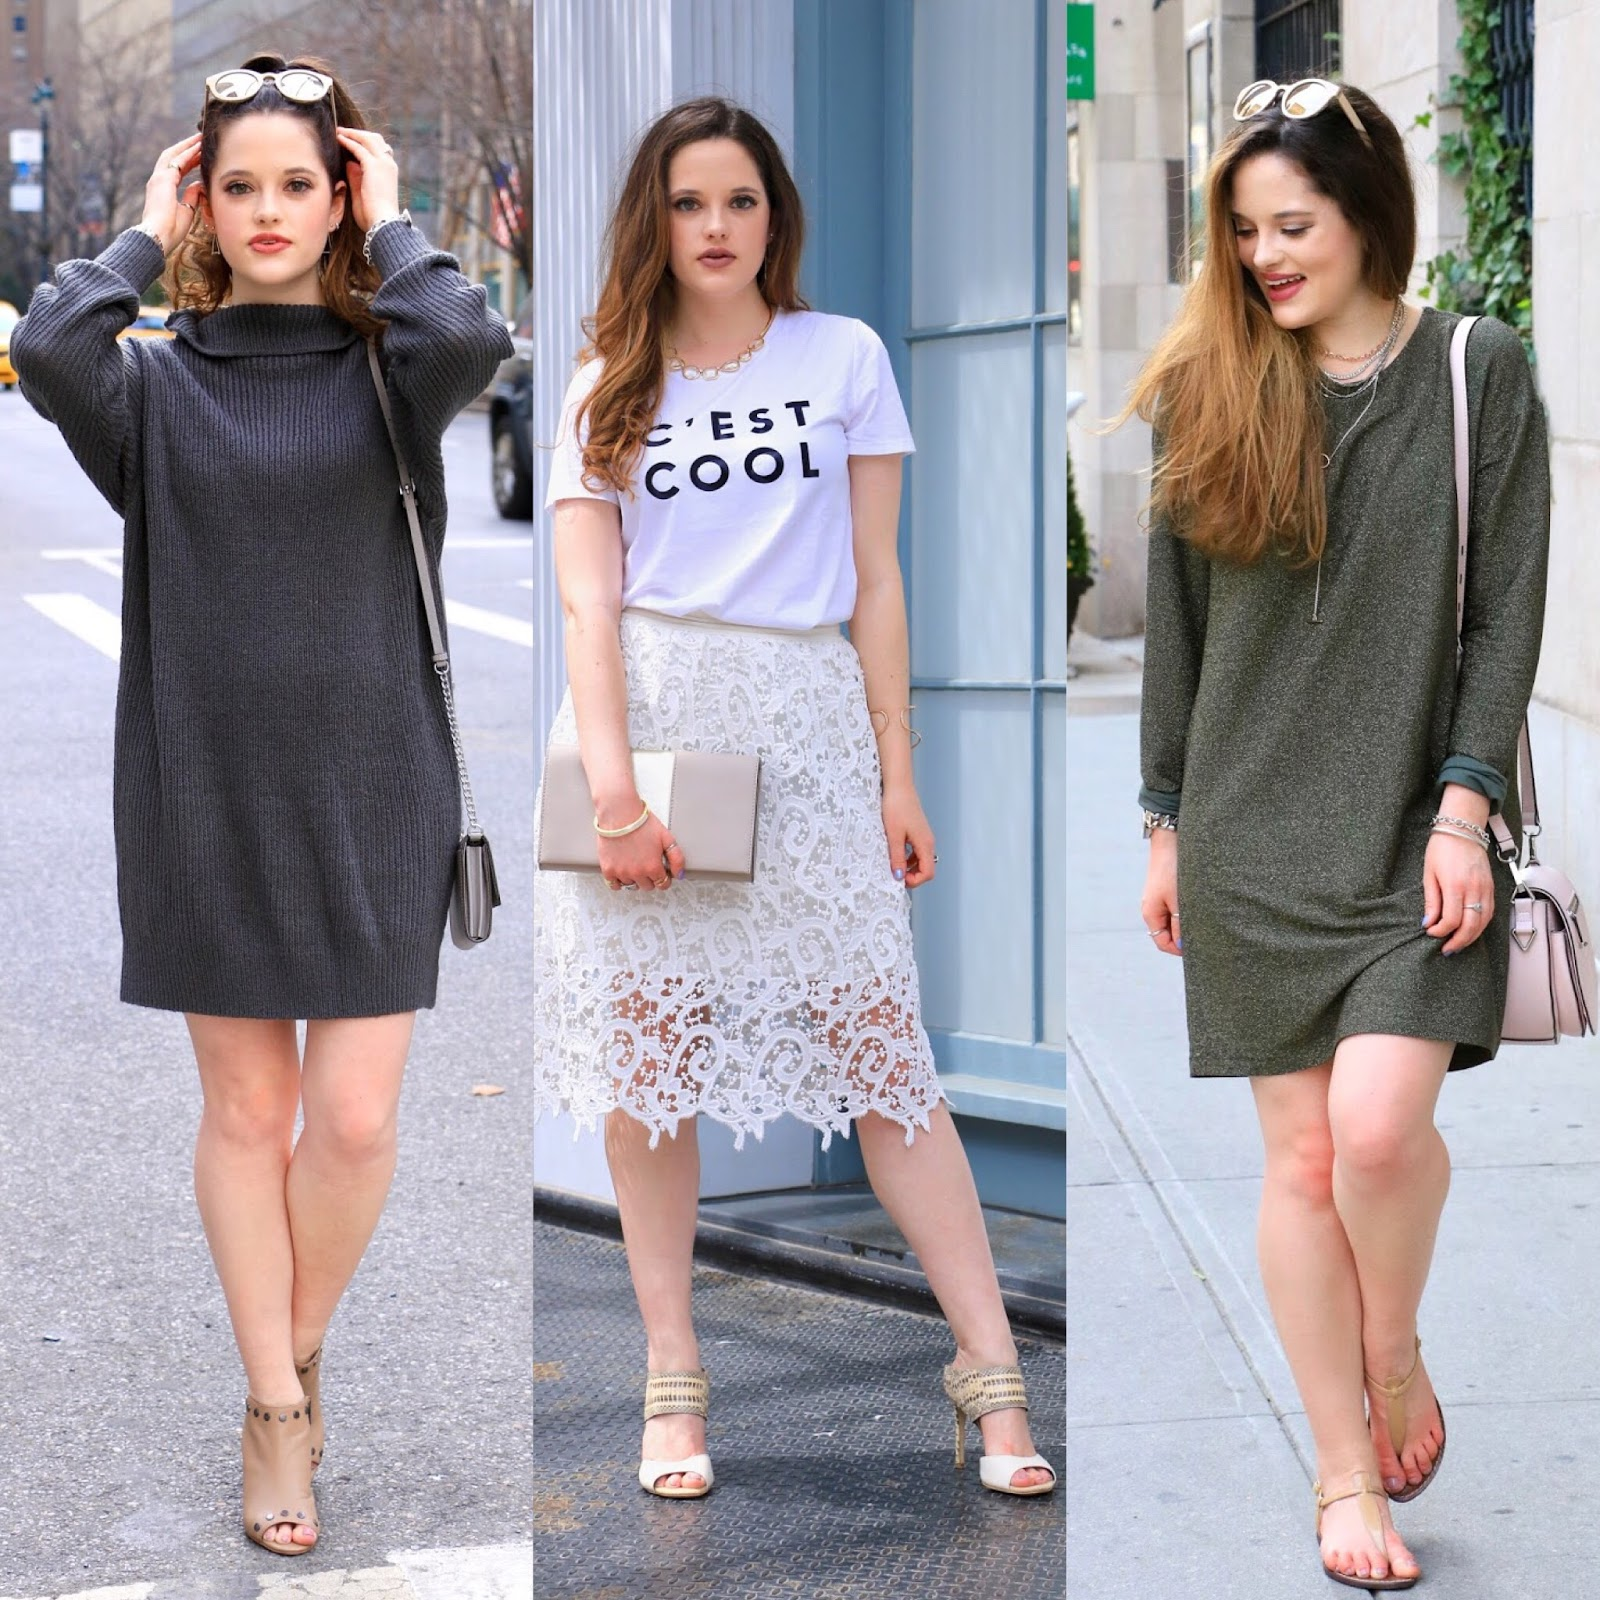 Fashion blogger spring outfit ideas